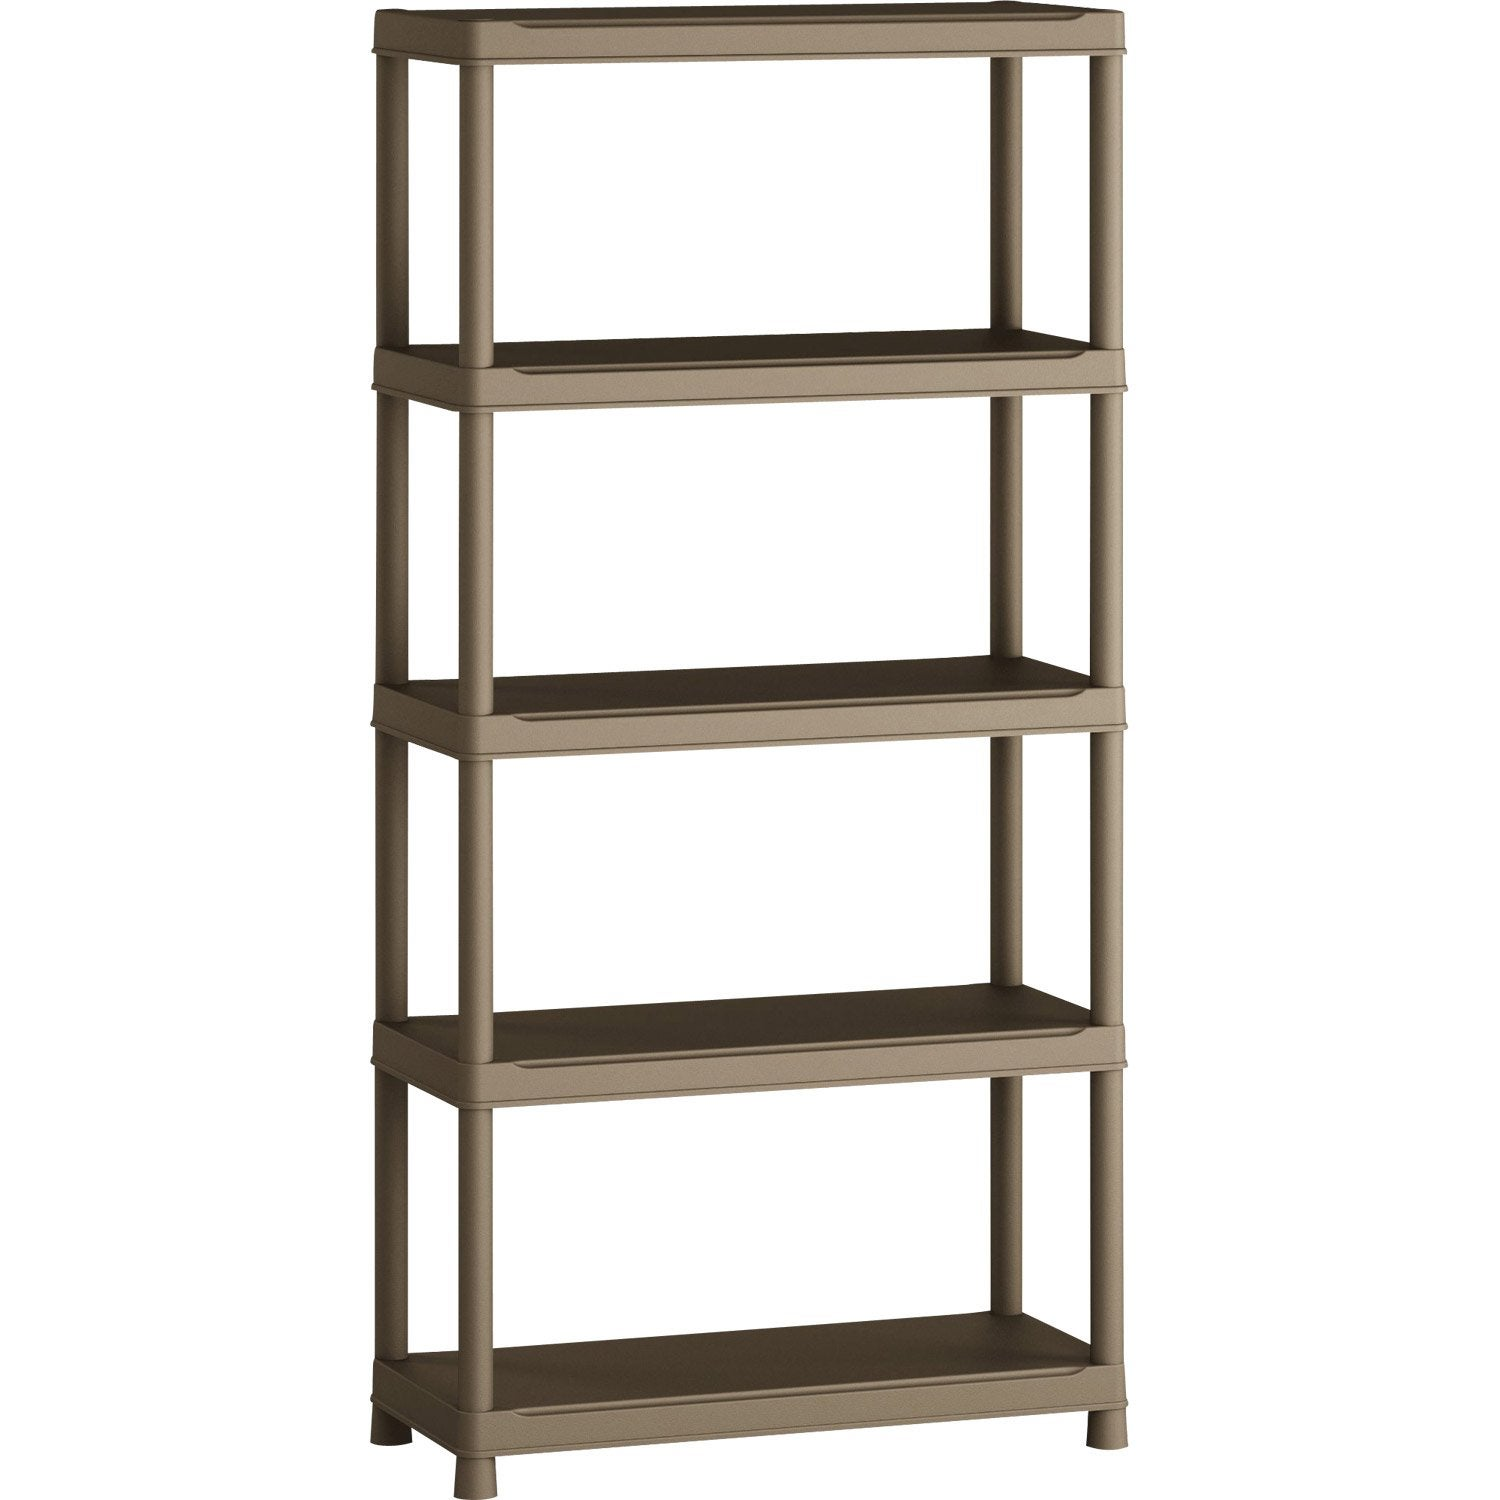 Etag re en r sine 5 tablettes spaceo 181x90x40 cm leroy merlin - Etagere metal leroy merlin ...